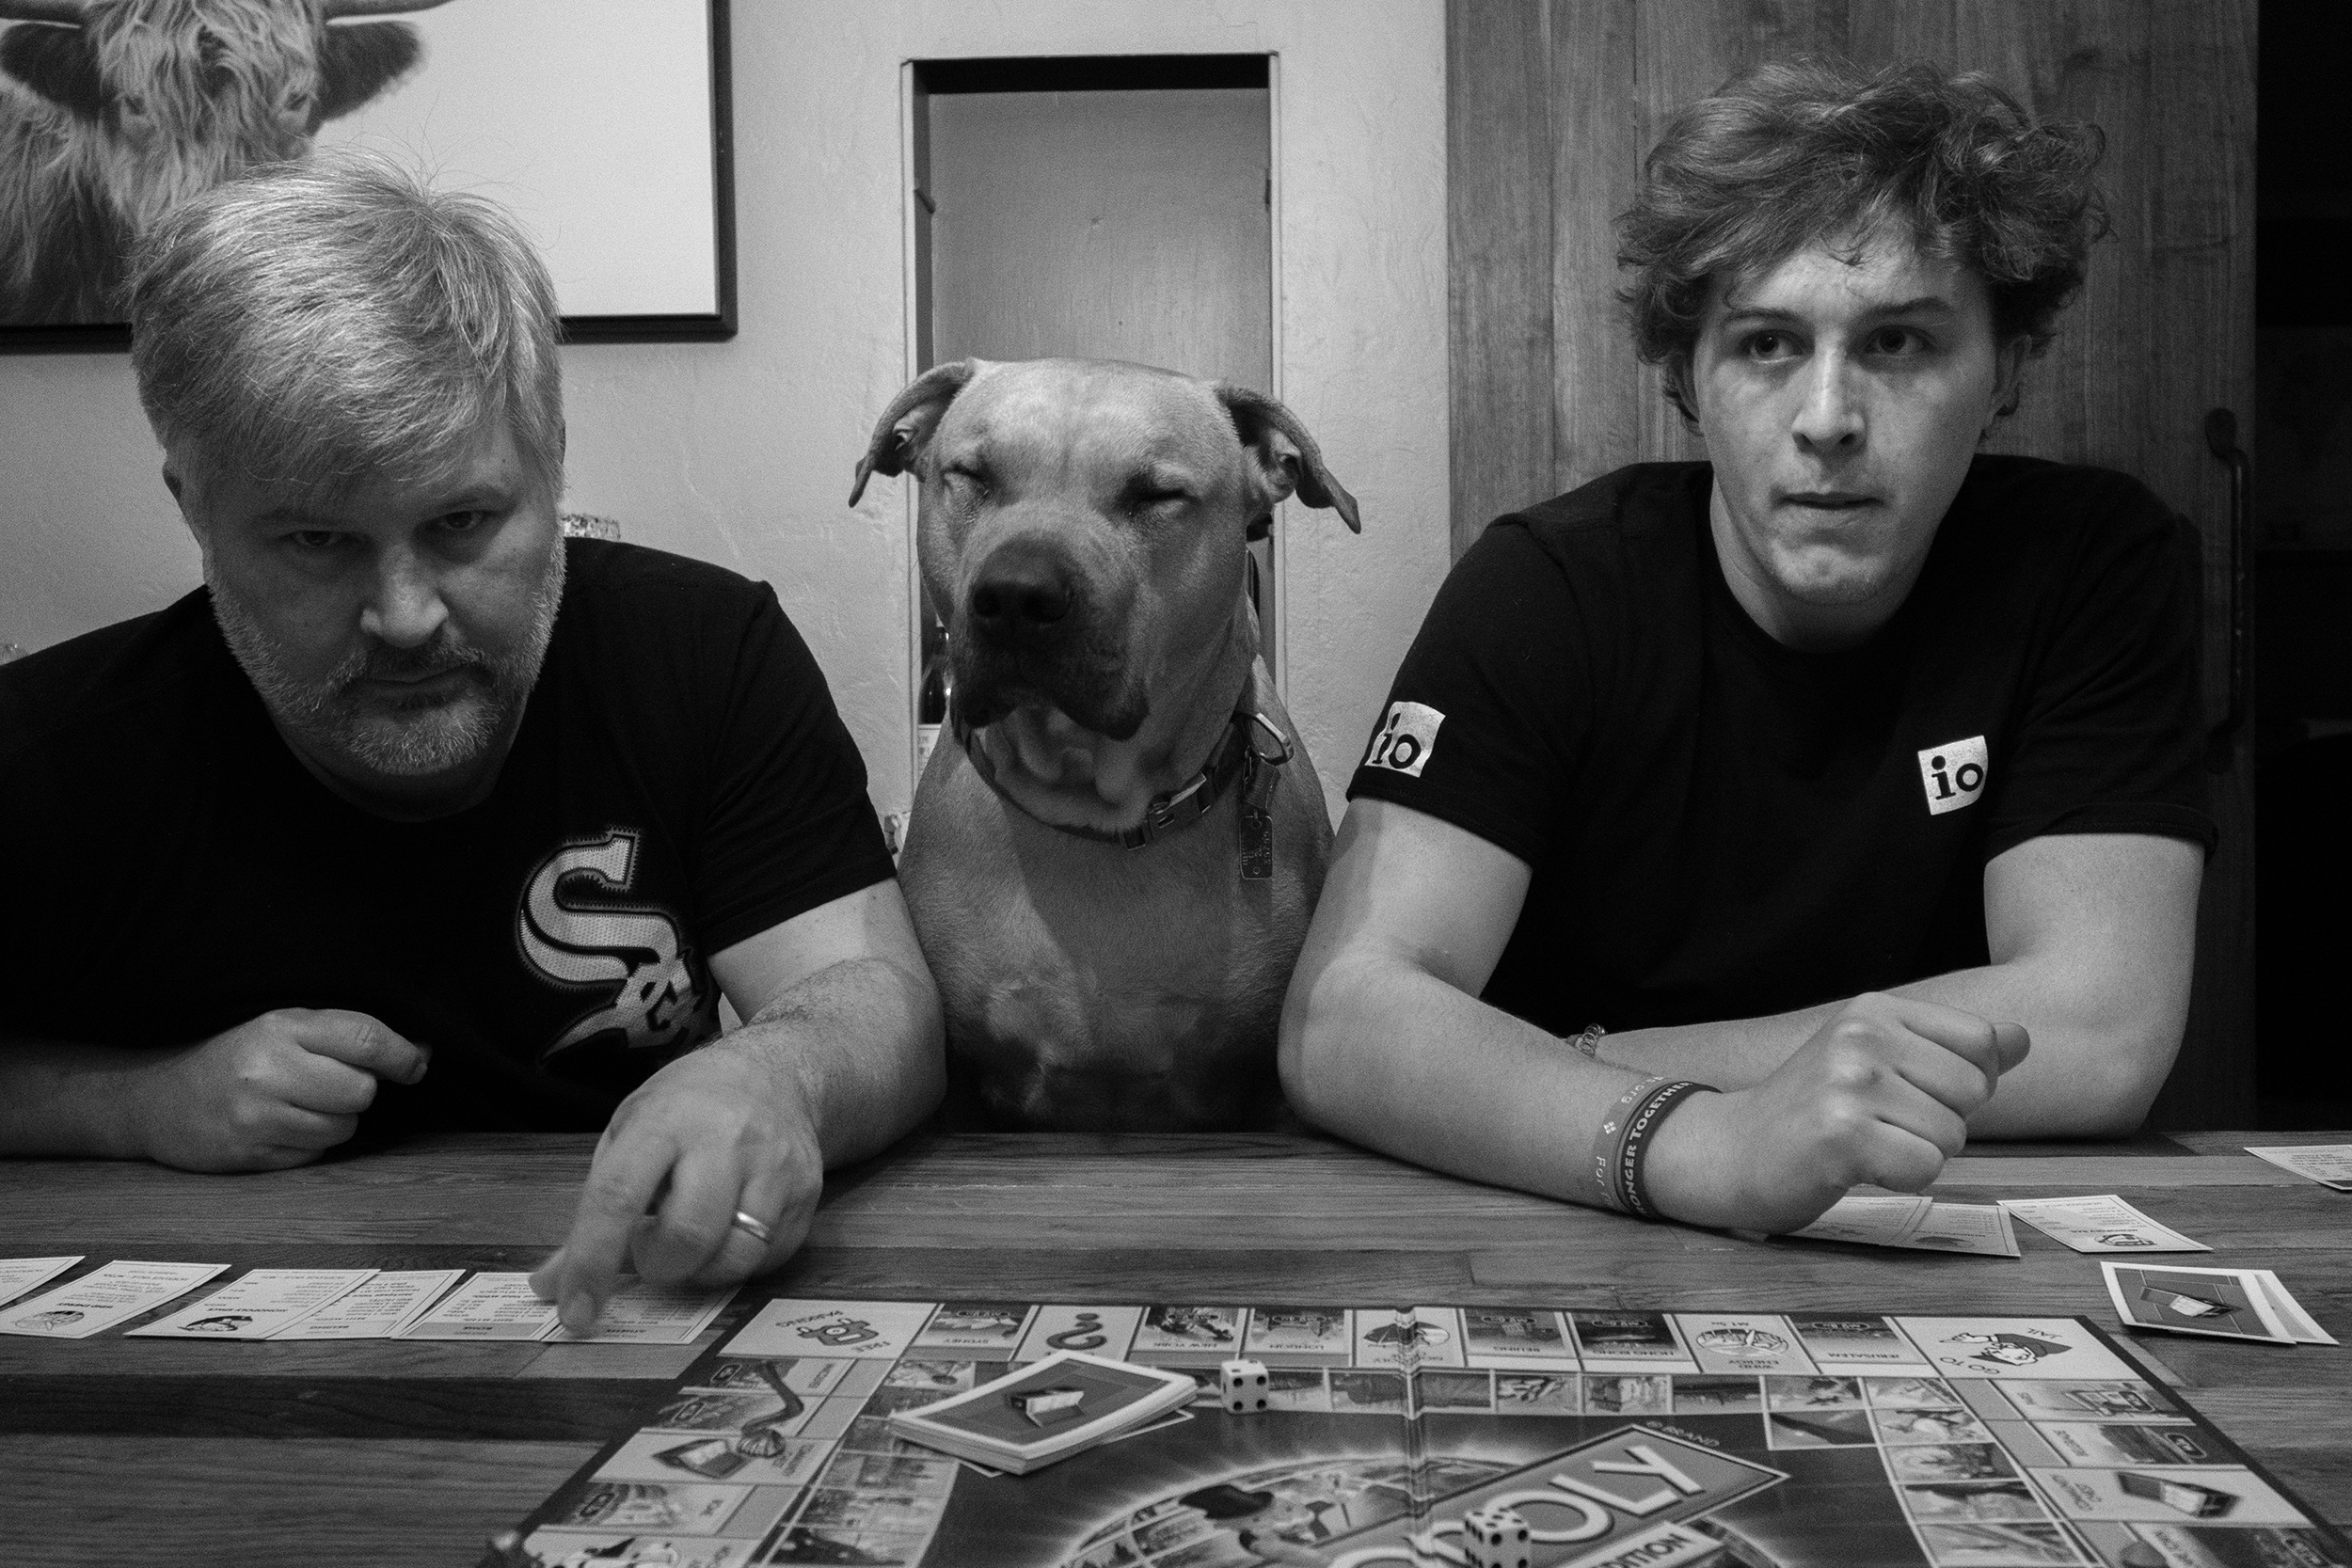 A happy pitbull sits at the table, sandwiched between two Kubit family members playing Monopoly.